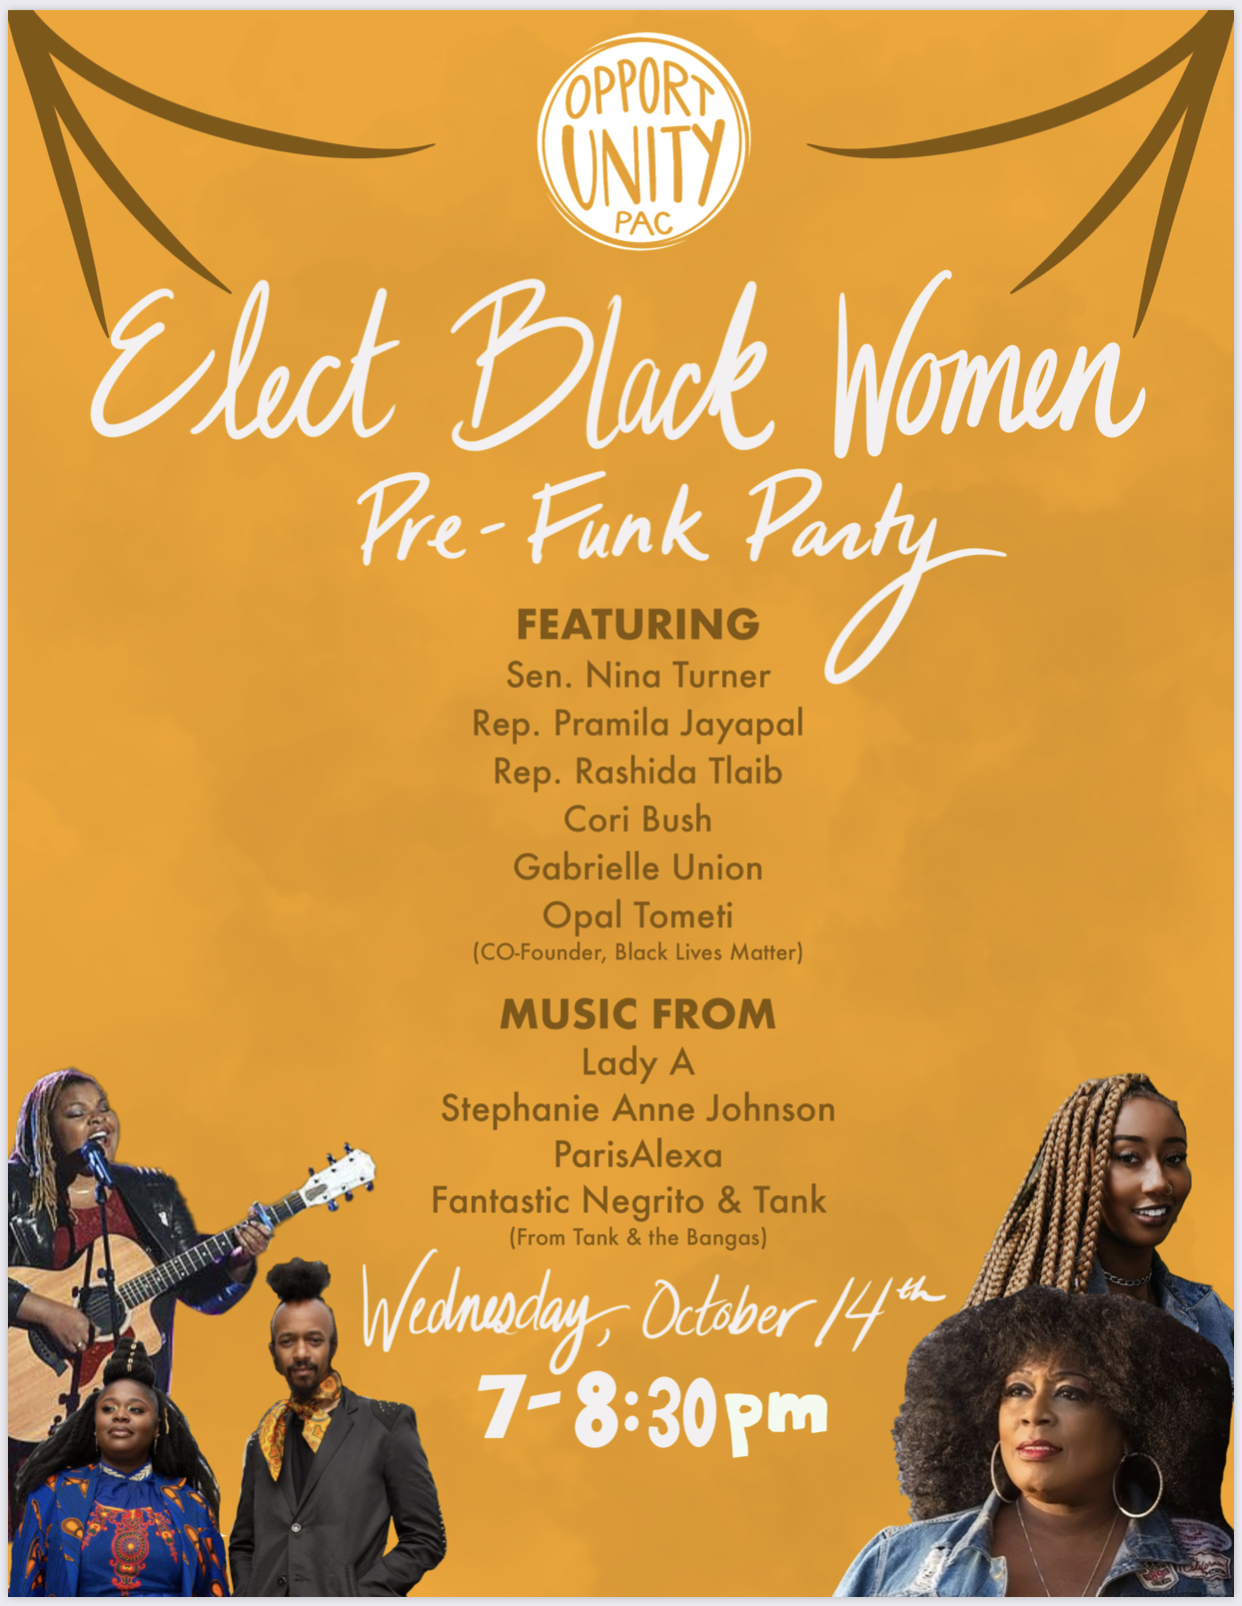 Opportunity PAC: Elect Black Women Pre-Funk Party